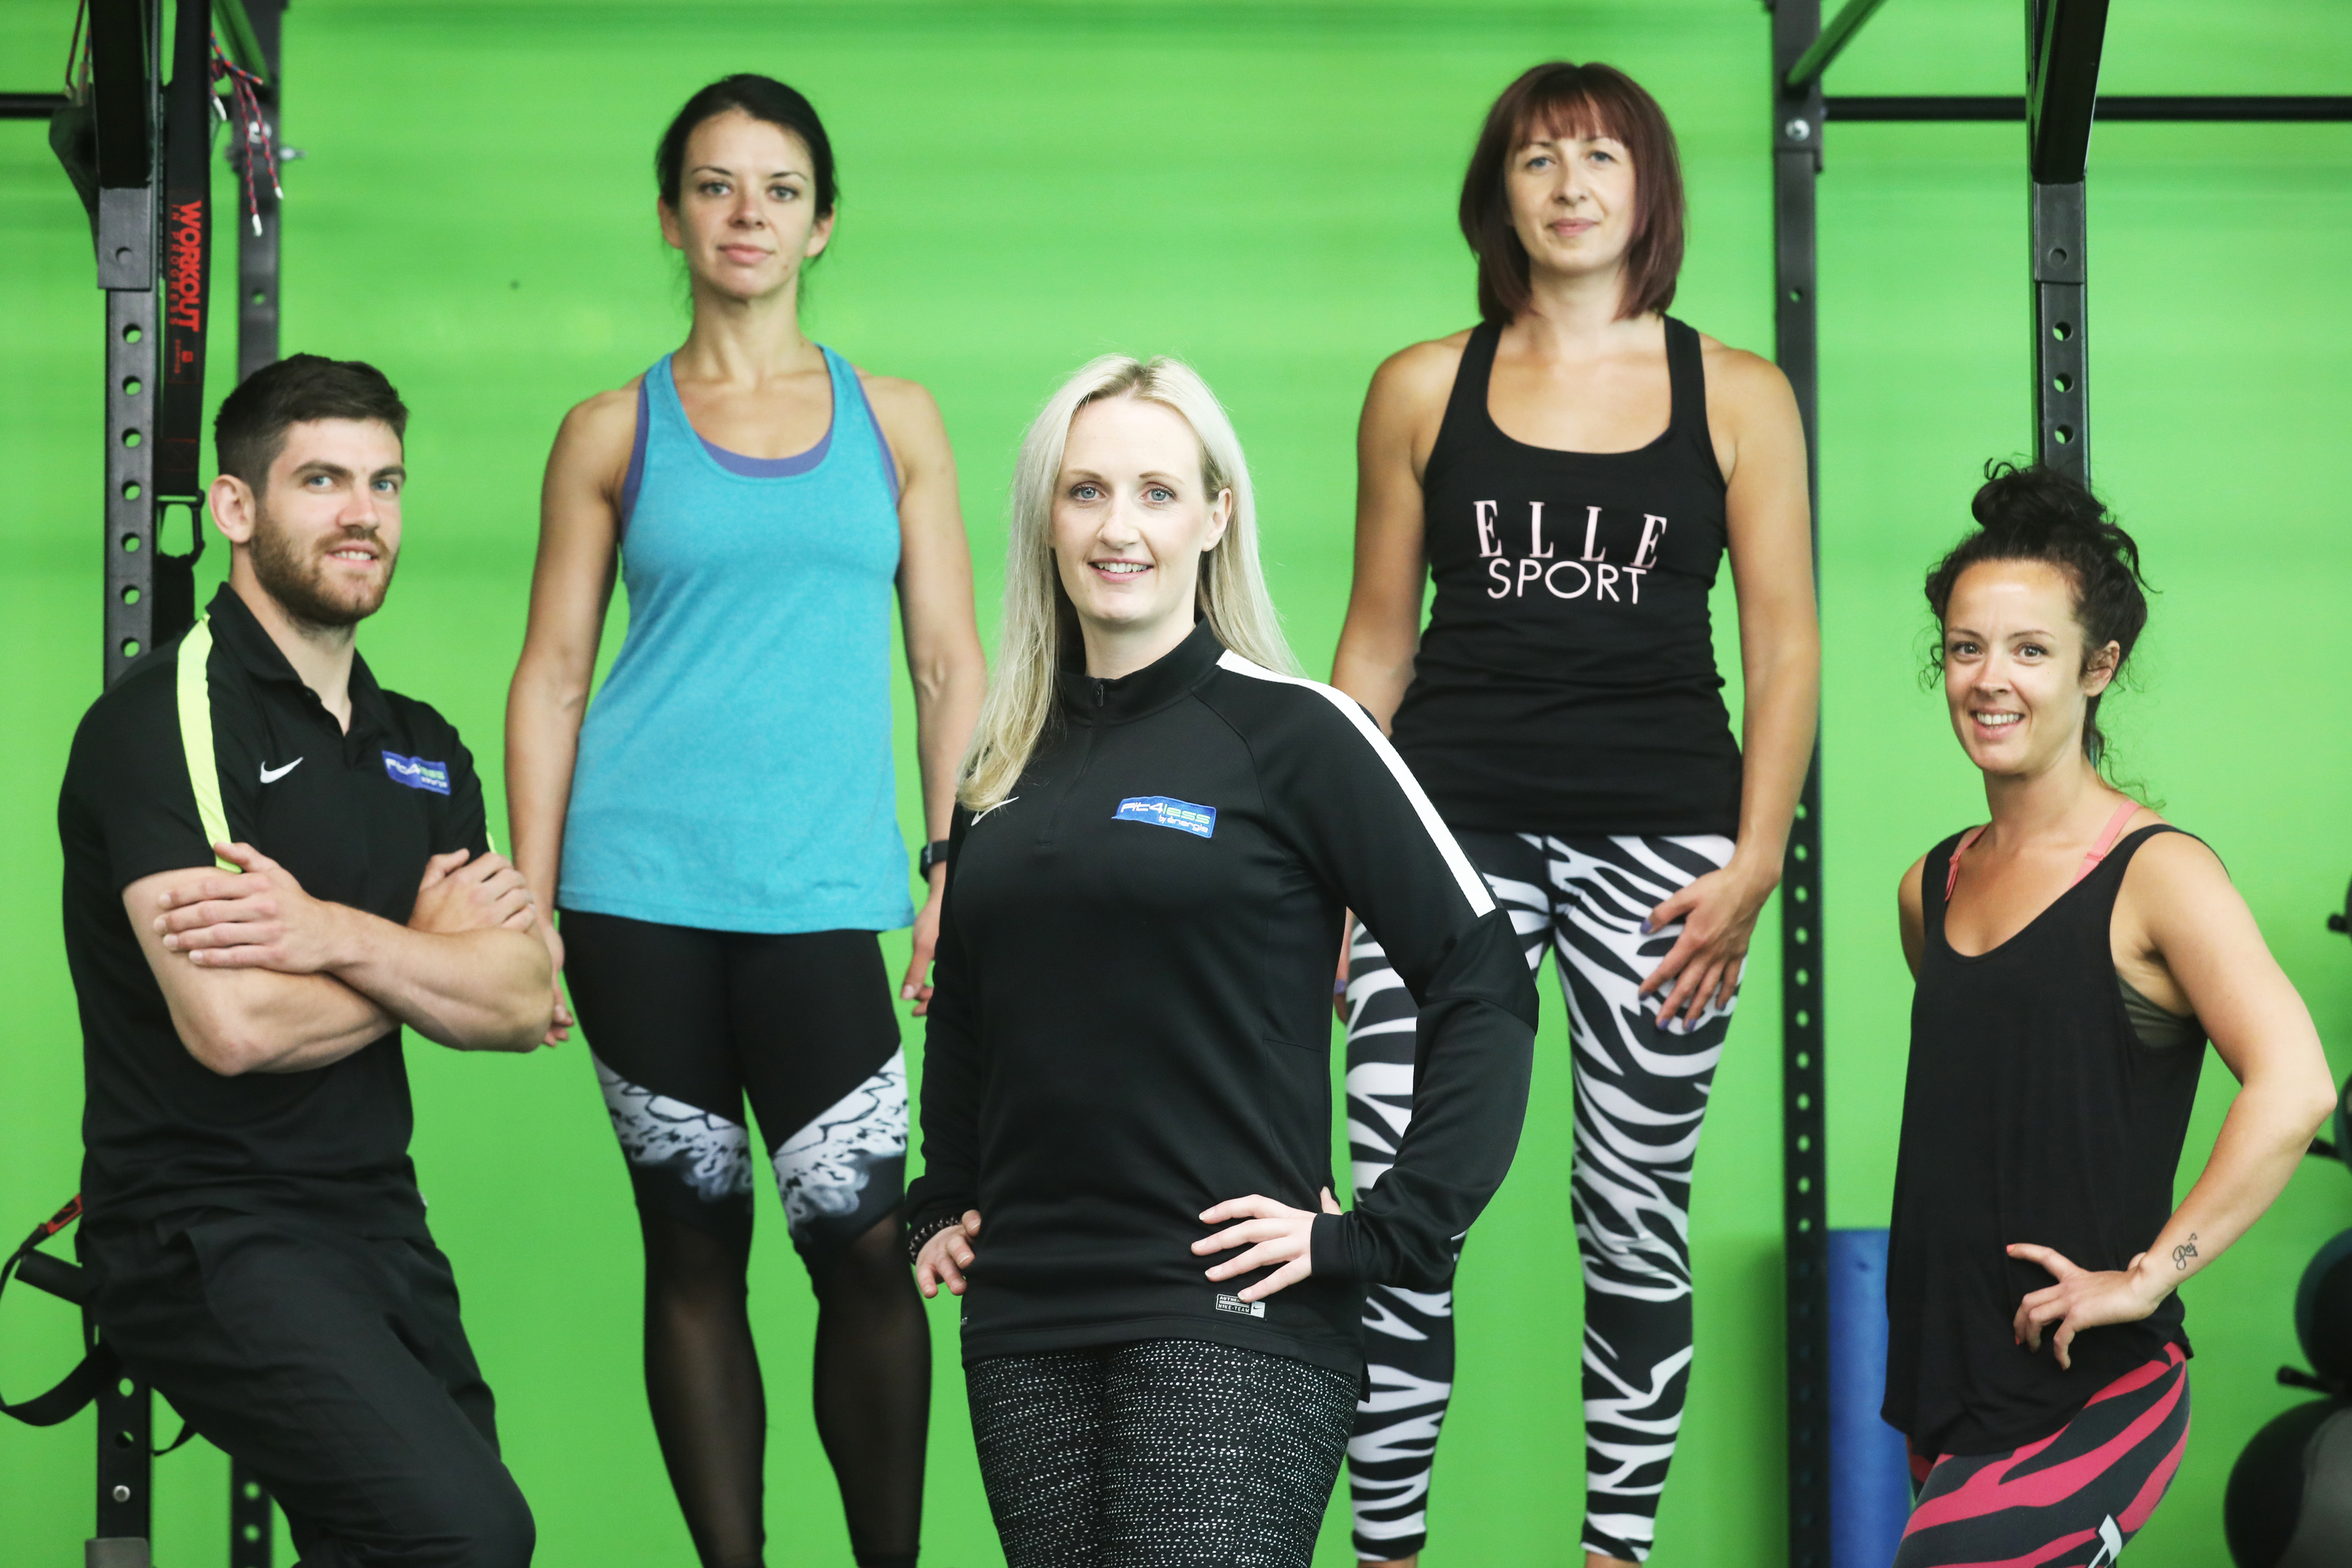 Fit4Less Perth members and staff. From left: Mike Coia, Agata Jamicka, Tammy Fleuchar, Michelle Fotheringham and Charlotte Dangi.